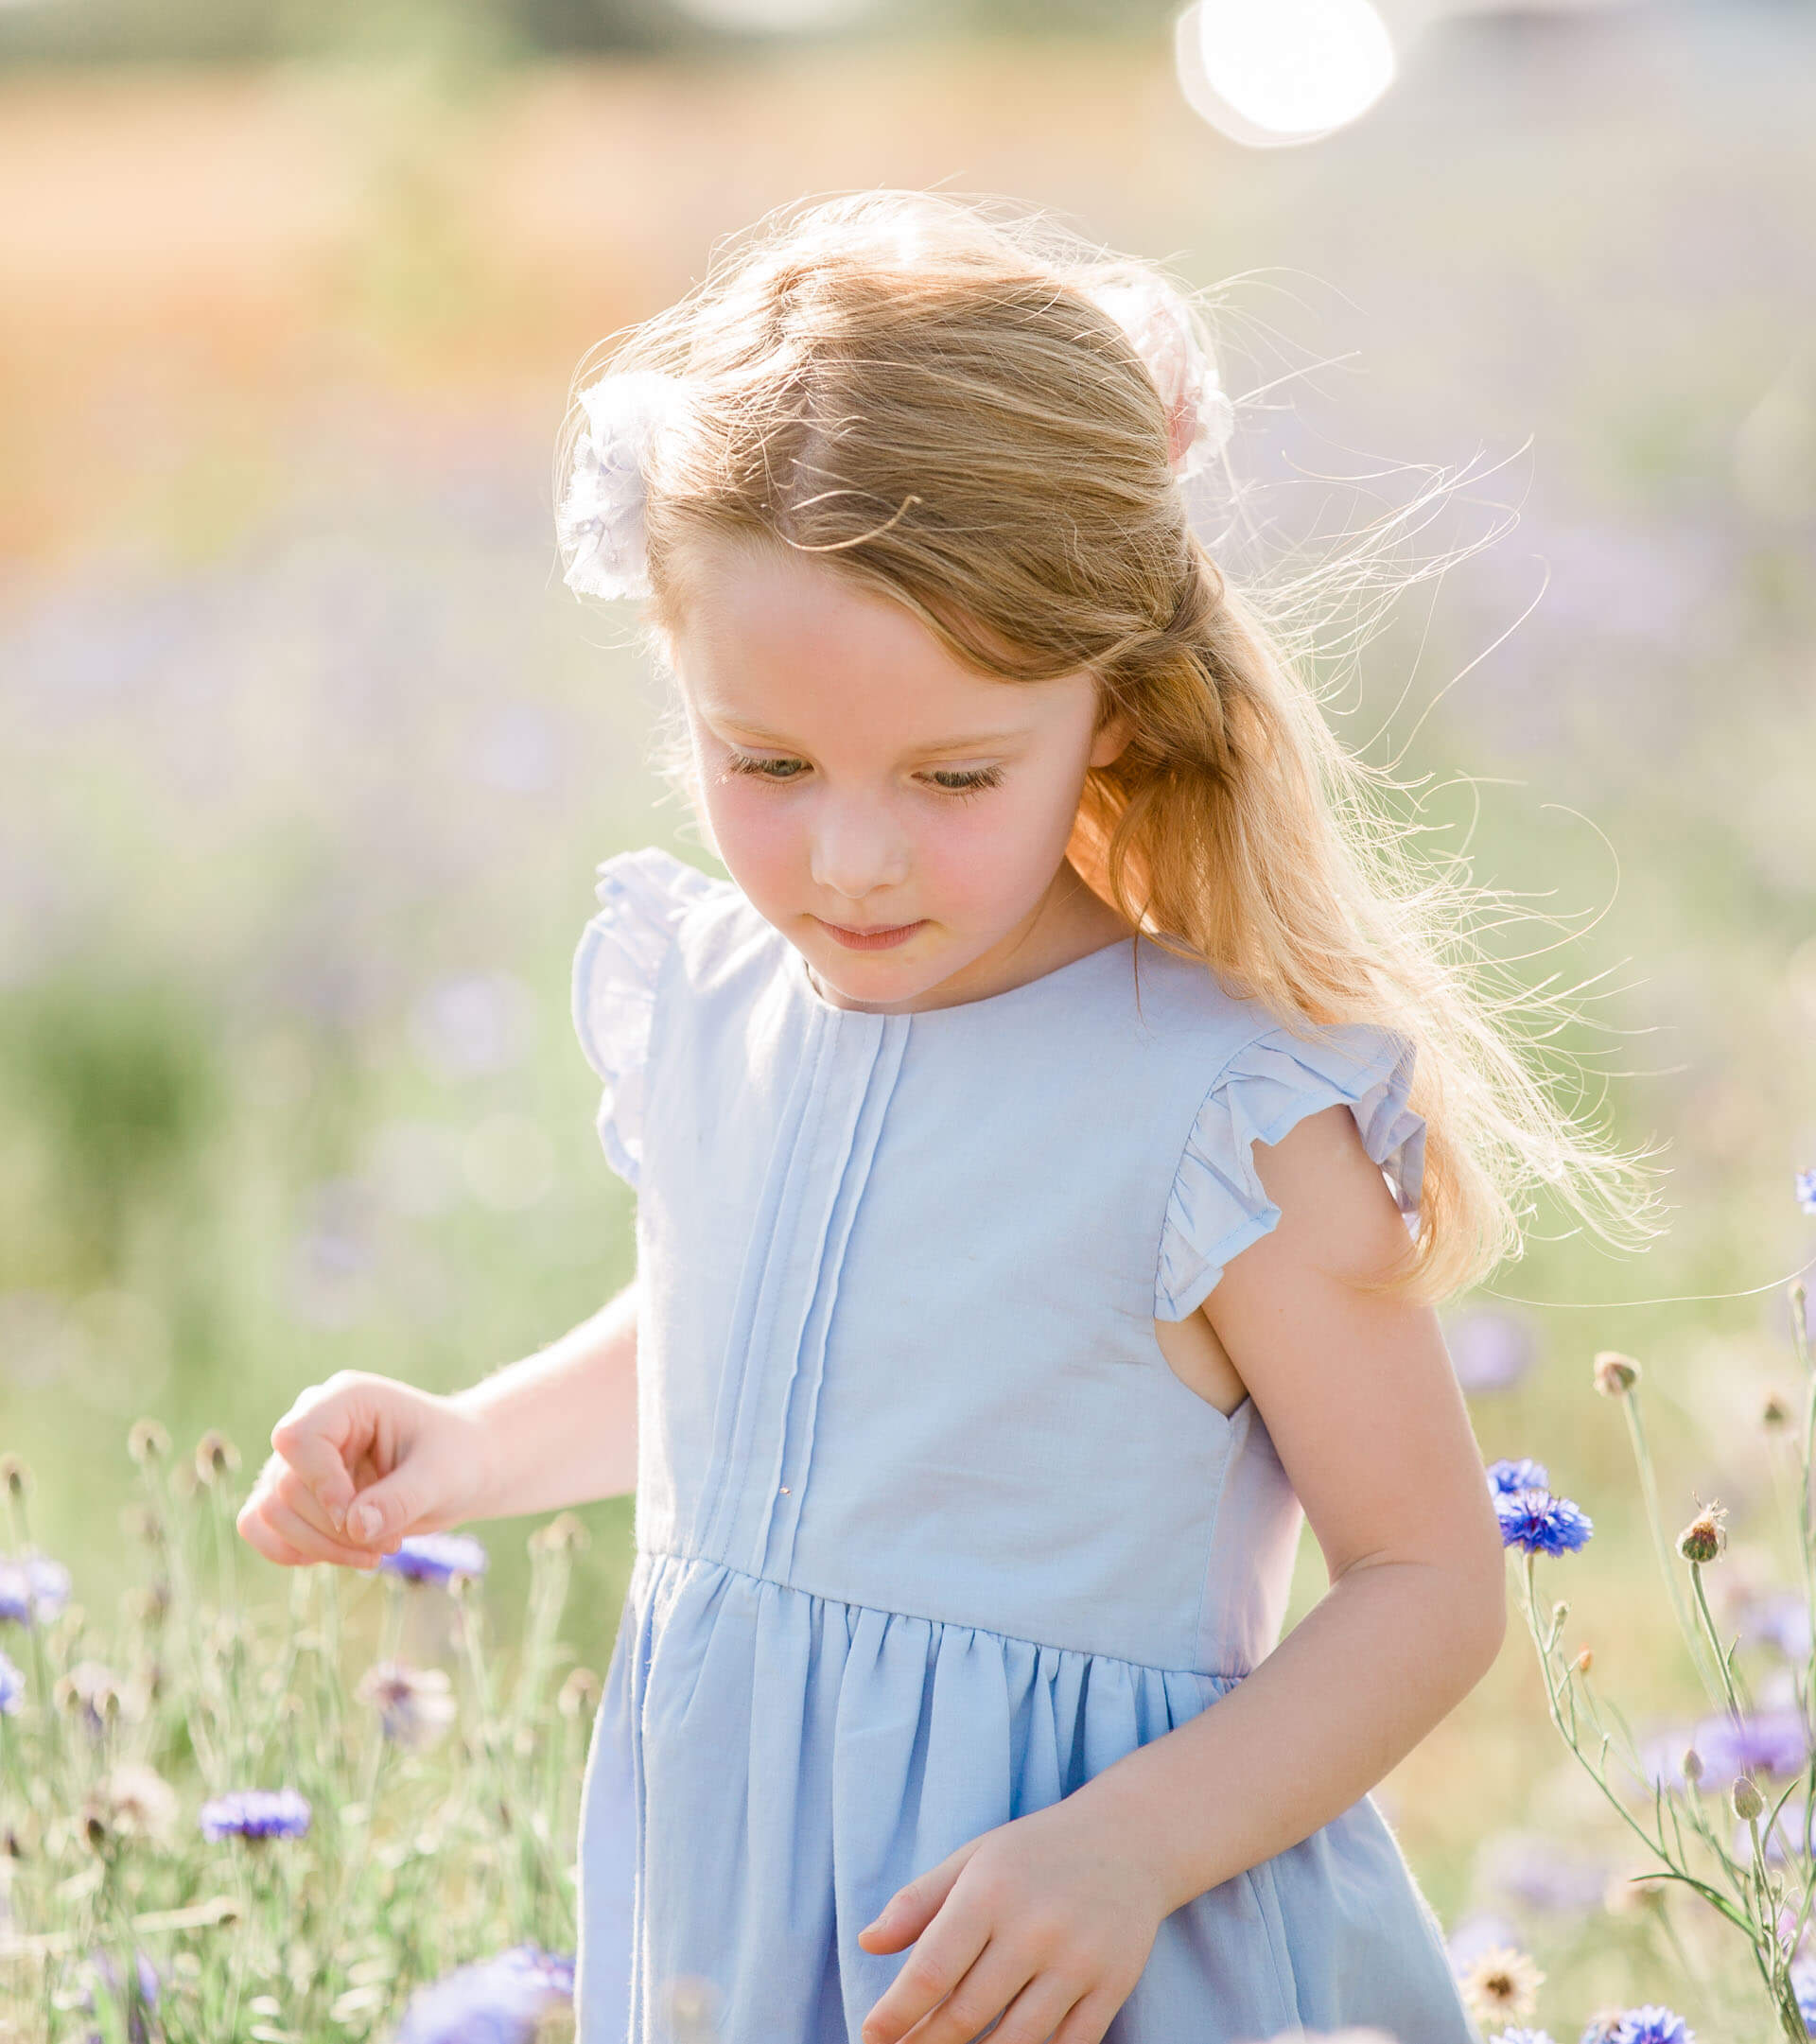 Young girl in blue top walking through the cornflowers in summer with her hair blowing in wind captured by Kika Mitchell Photography